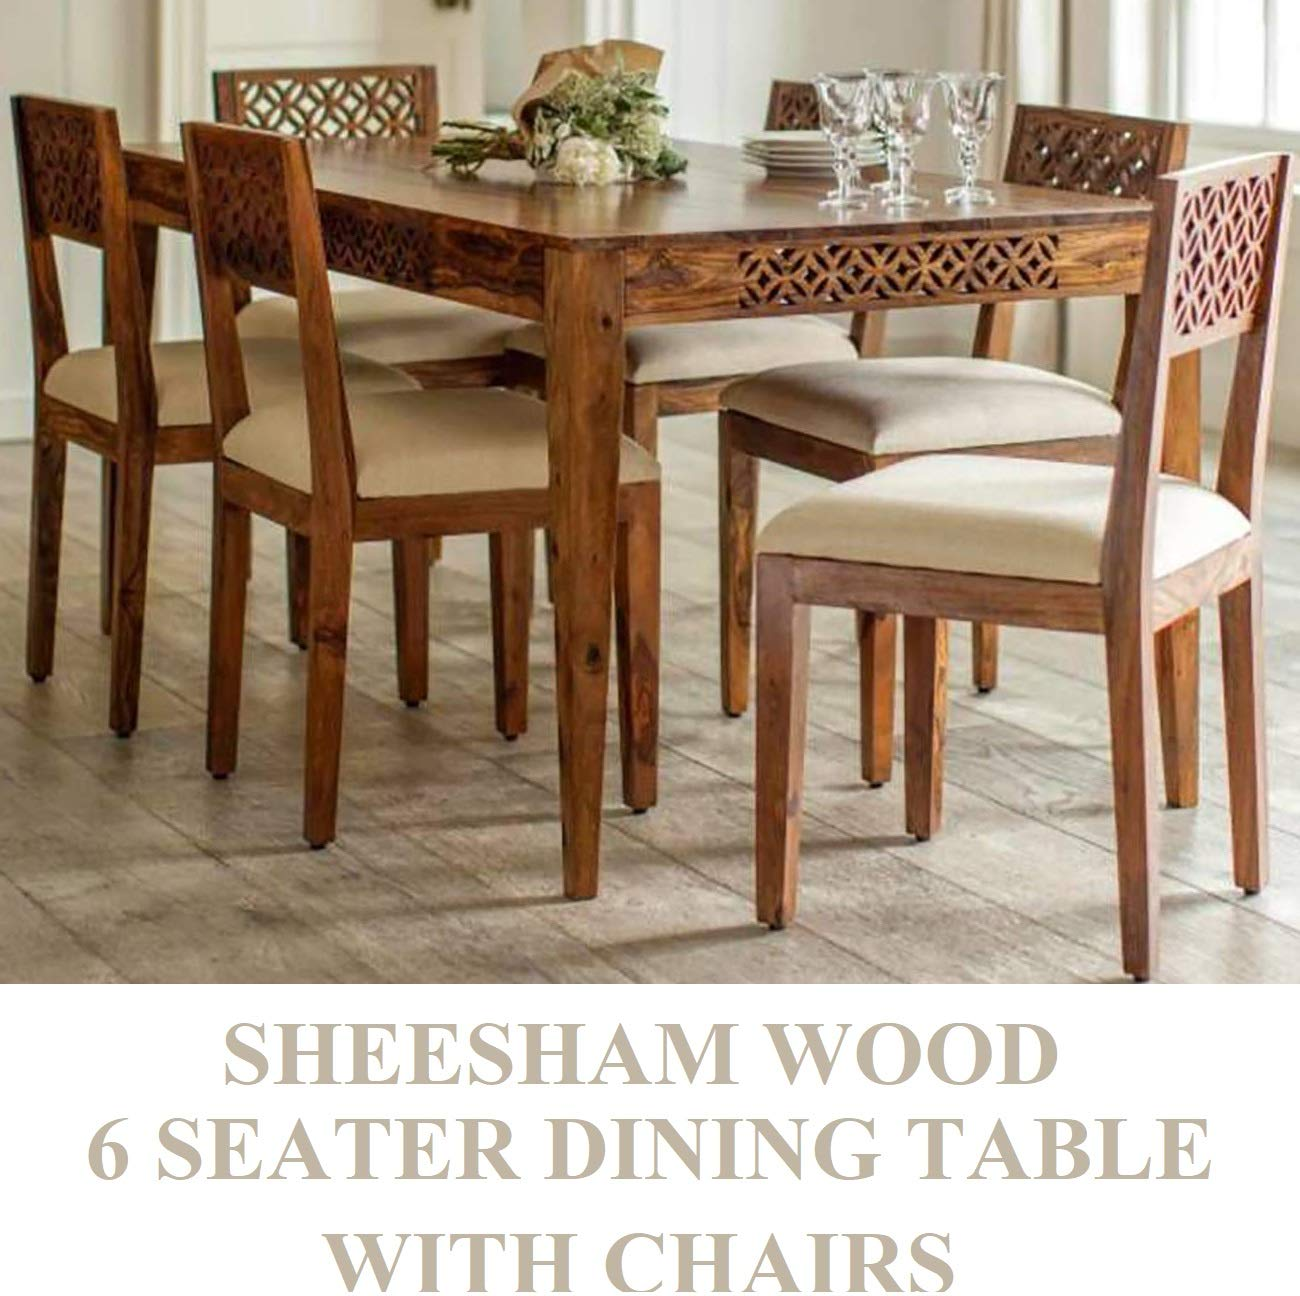 Rjkart Sheesham Wood Standard 6 Seater Dining Table With Chairs For Dining Room Premium Maharaja Collection Dining Table 6 Seater Set Amazon In Electronics